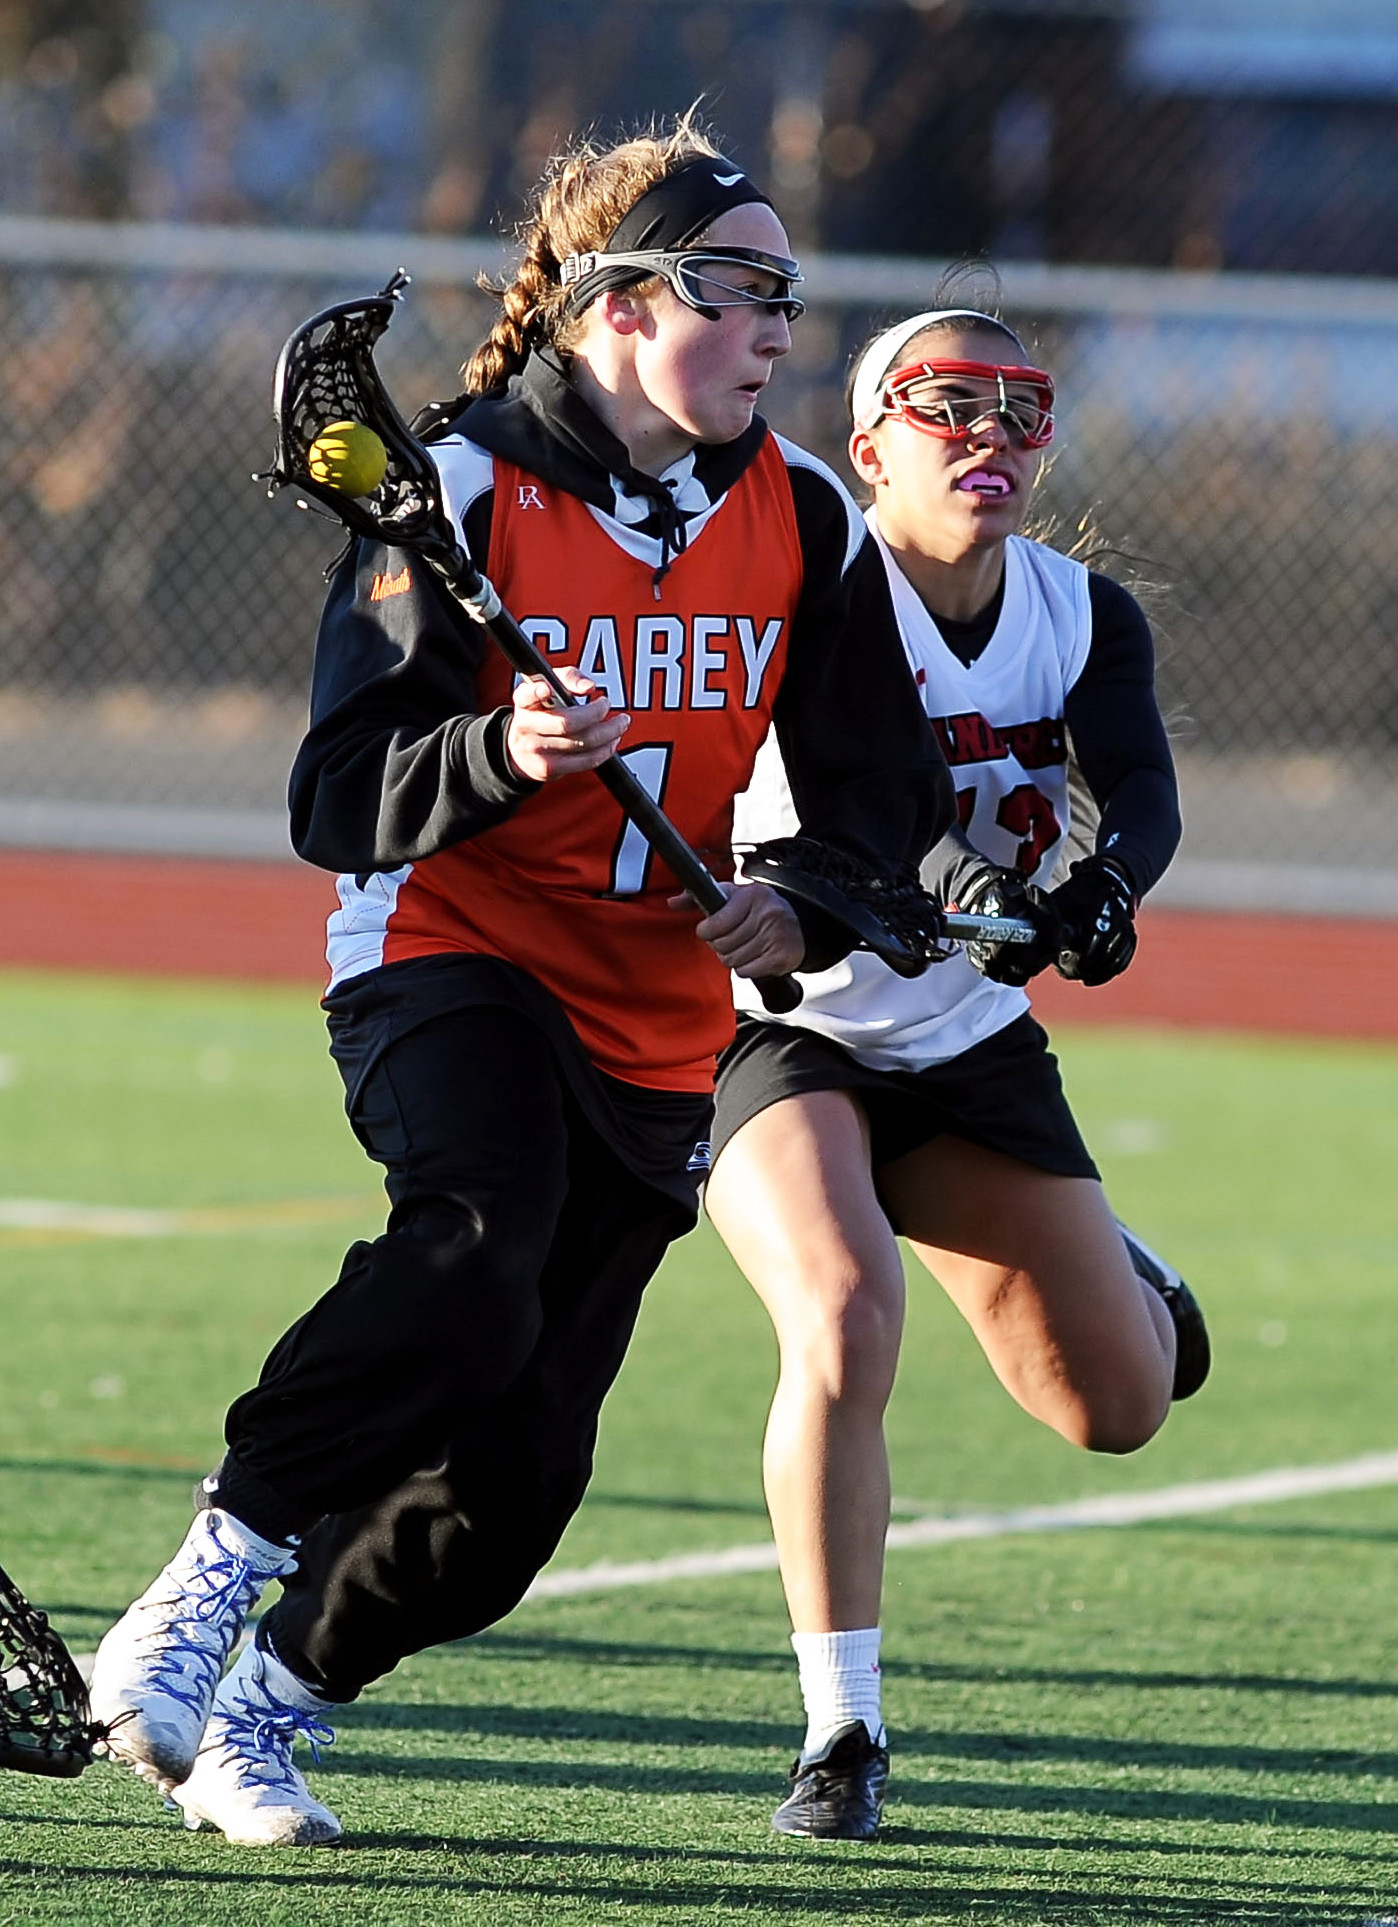 Carey's Kelly-Ann McGrath is off to an incredible start as a freshman with 16 goals through three games, including a seven-goal effort in the opener at Island Trees.